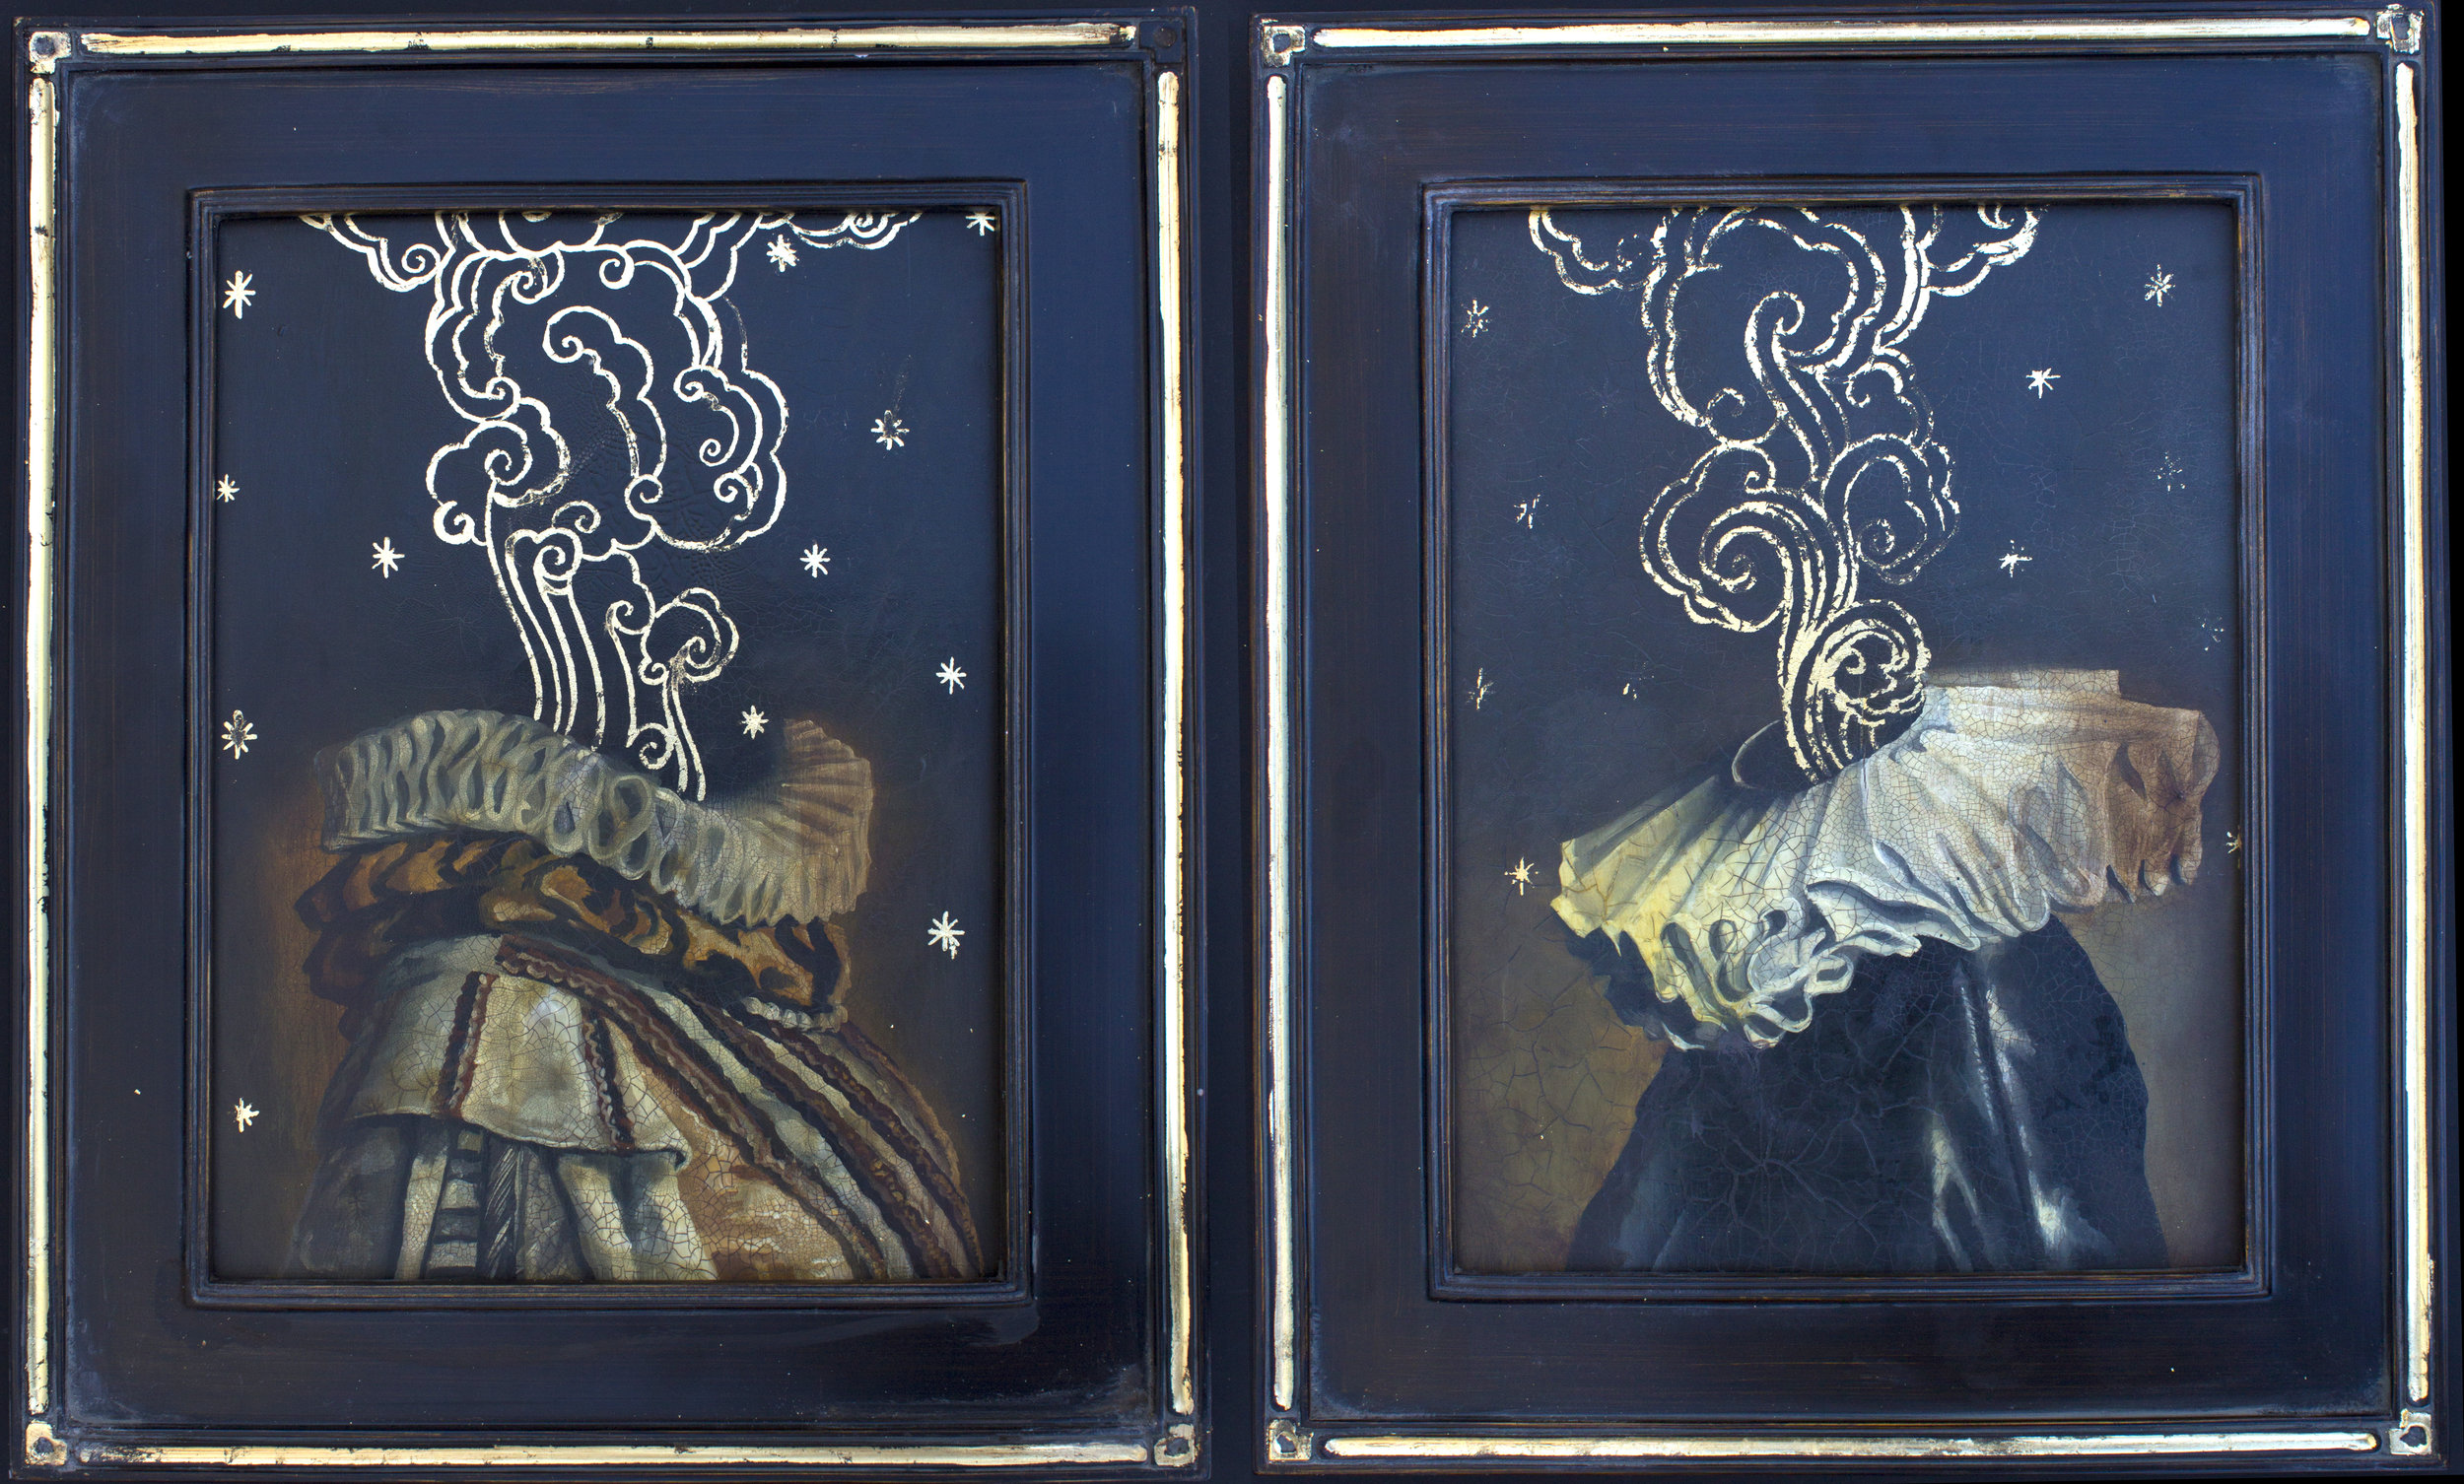 "A dreamer and her Lover   oil/gold leaf on board  2 pieces 12""x16"" each  2019"